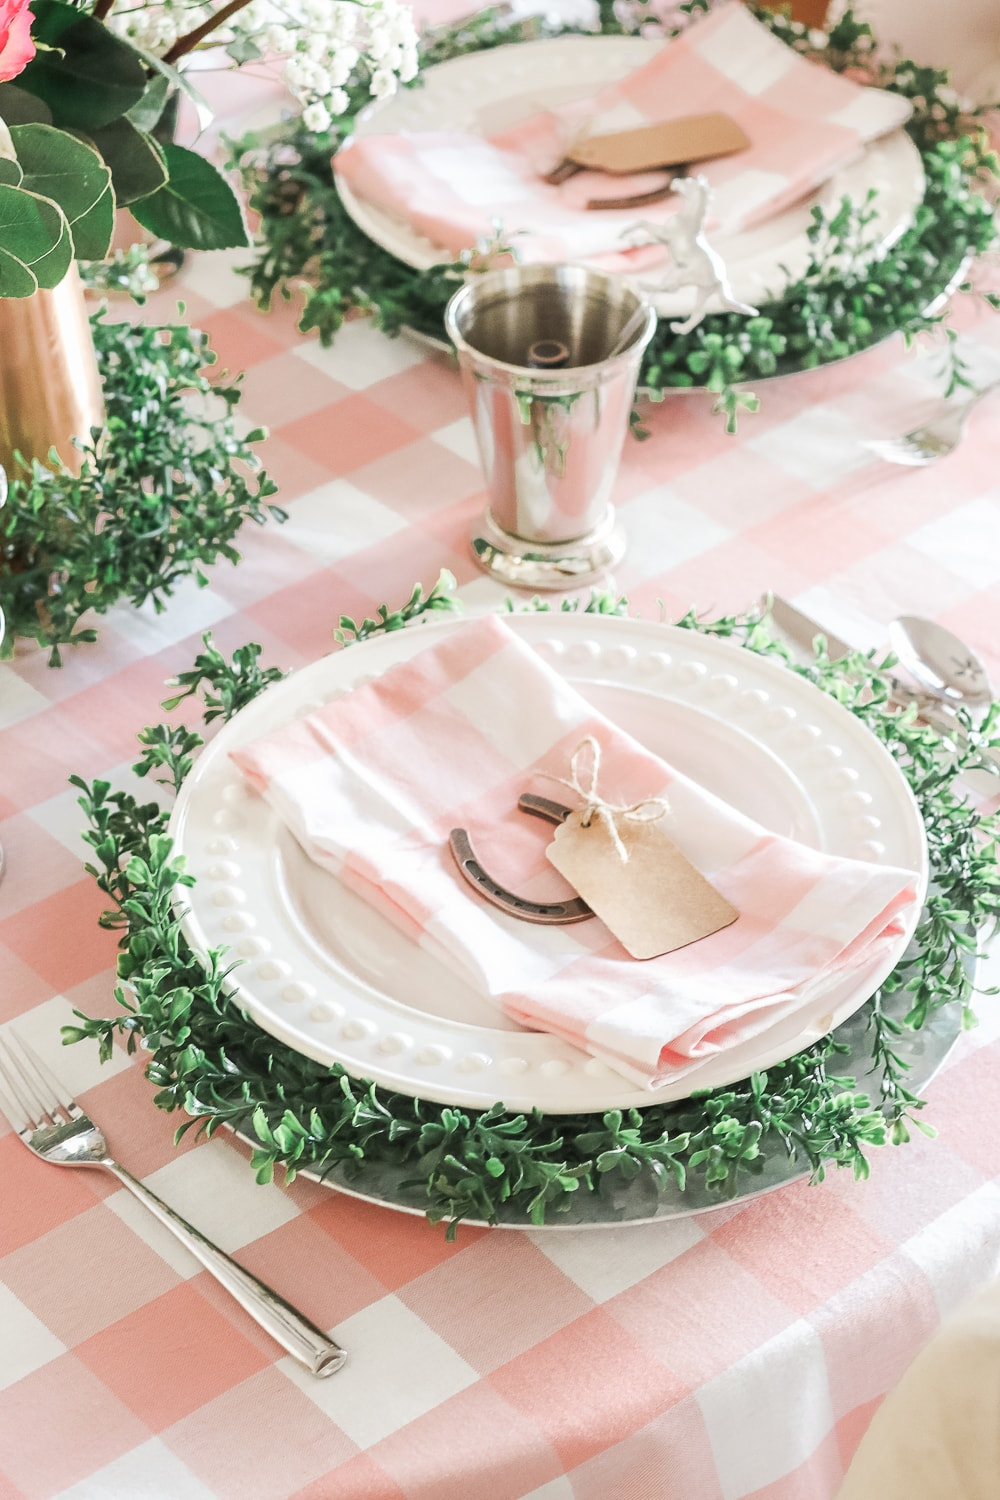 Kentucky Derby table settings designed by entertaining blogger Stephanie Ziajka on Diary of a Debutante